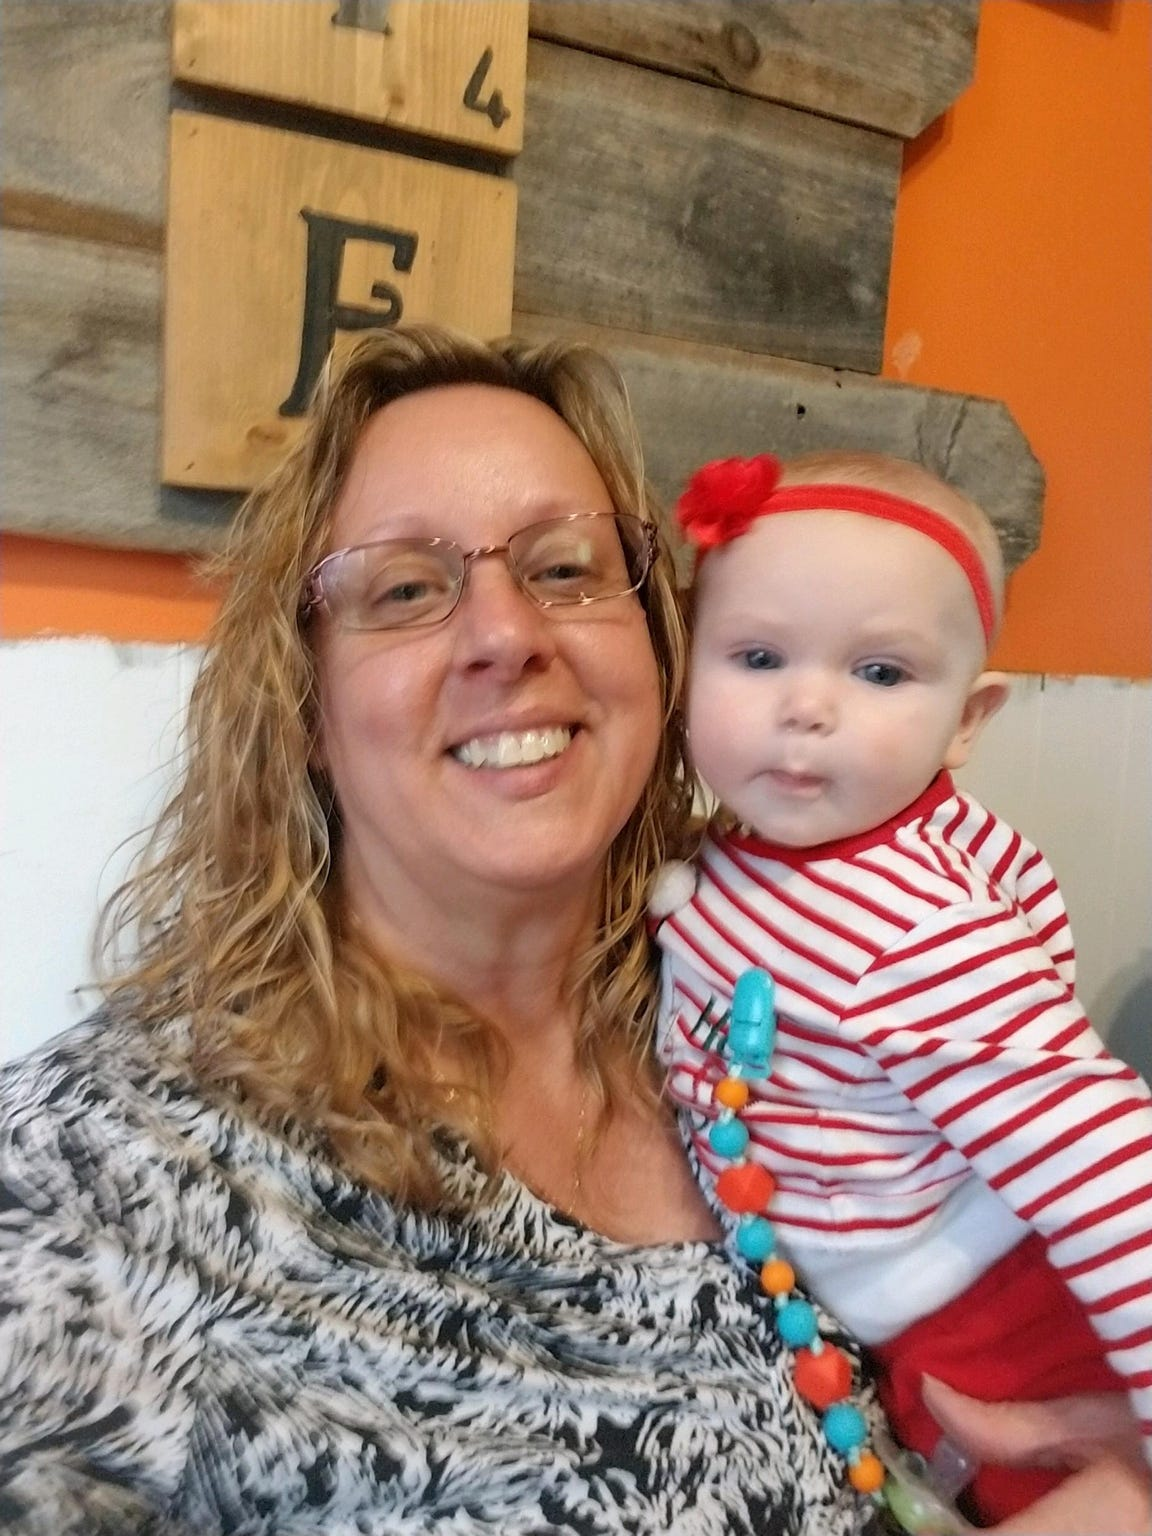 Carrie Hennig, a 56-year-old respiratory therapist from Sanford, had spent a month in the intensive care uniton a ventilator after contracting the novel coronavirus, presumably while helping others to breathe.